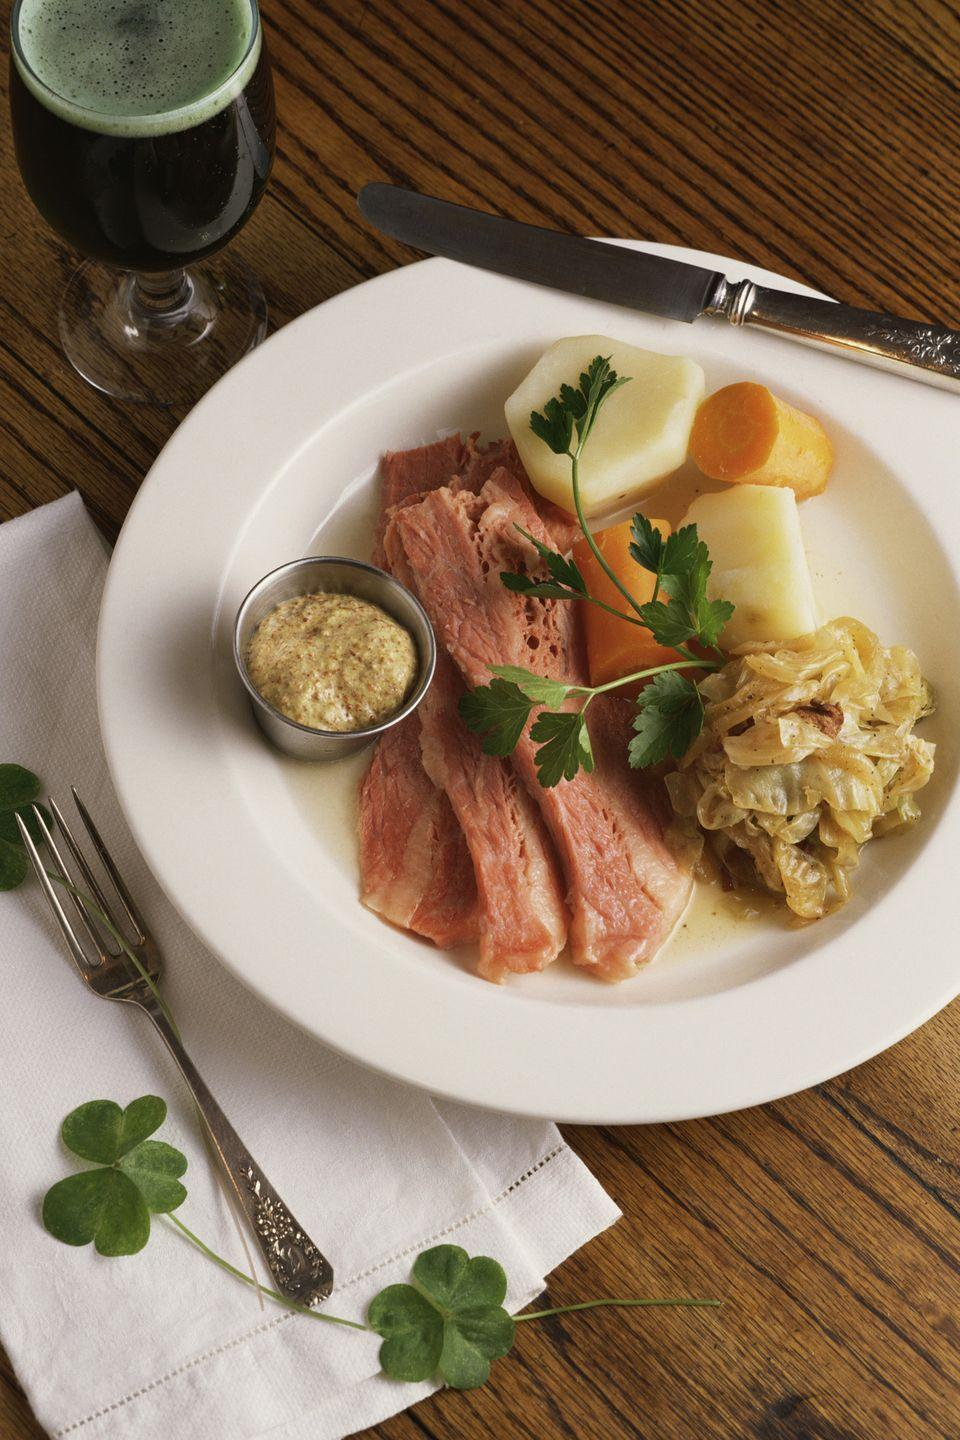 """<p>So it's not exactly authentic, but this meal has become part of the American tradition on St. Paddy's Day because, well, it's delicious.</p><p><em><a href=""""https://www.goodhousekeeping.com/recipefinder/corned-beef-cabbage-potatoes-2505"""" rel=""""nofollow noopener"""" target=""""_blank"""" data-ylk=""""slk:Get the recipe Corned Beef with Cabbage and Potatoes »"""" class=""""link rapid-noclick-resp"""">Get the recipe Corned Beef with Cabbage and Potatoes »</a></em> </p>"""